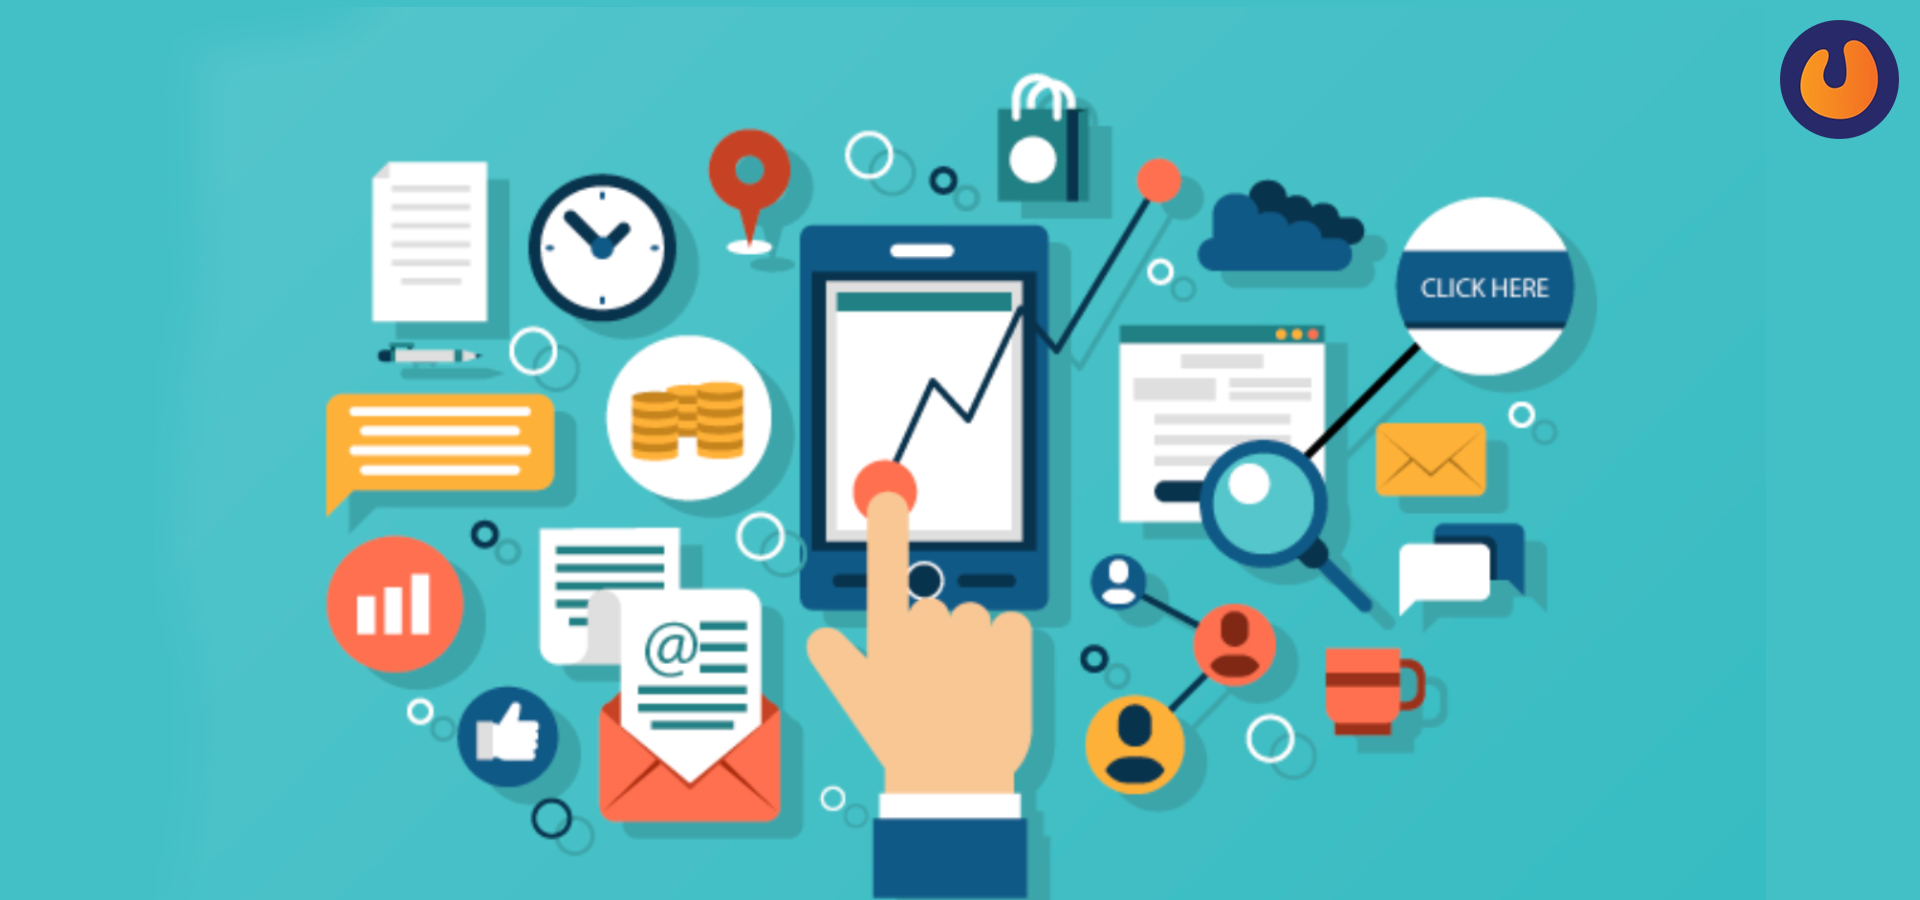 TOP 8 REASONS TO HIRE A DIGITAL MARKETING CONSULTANT